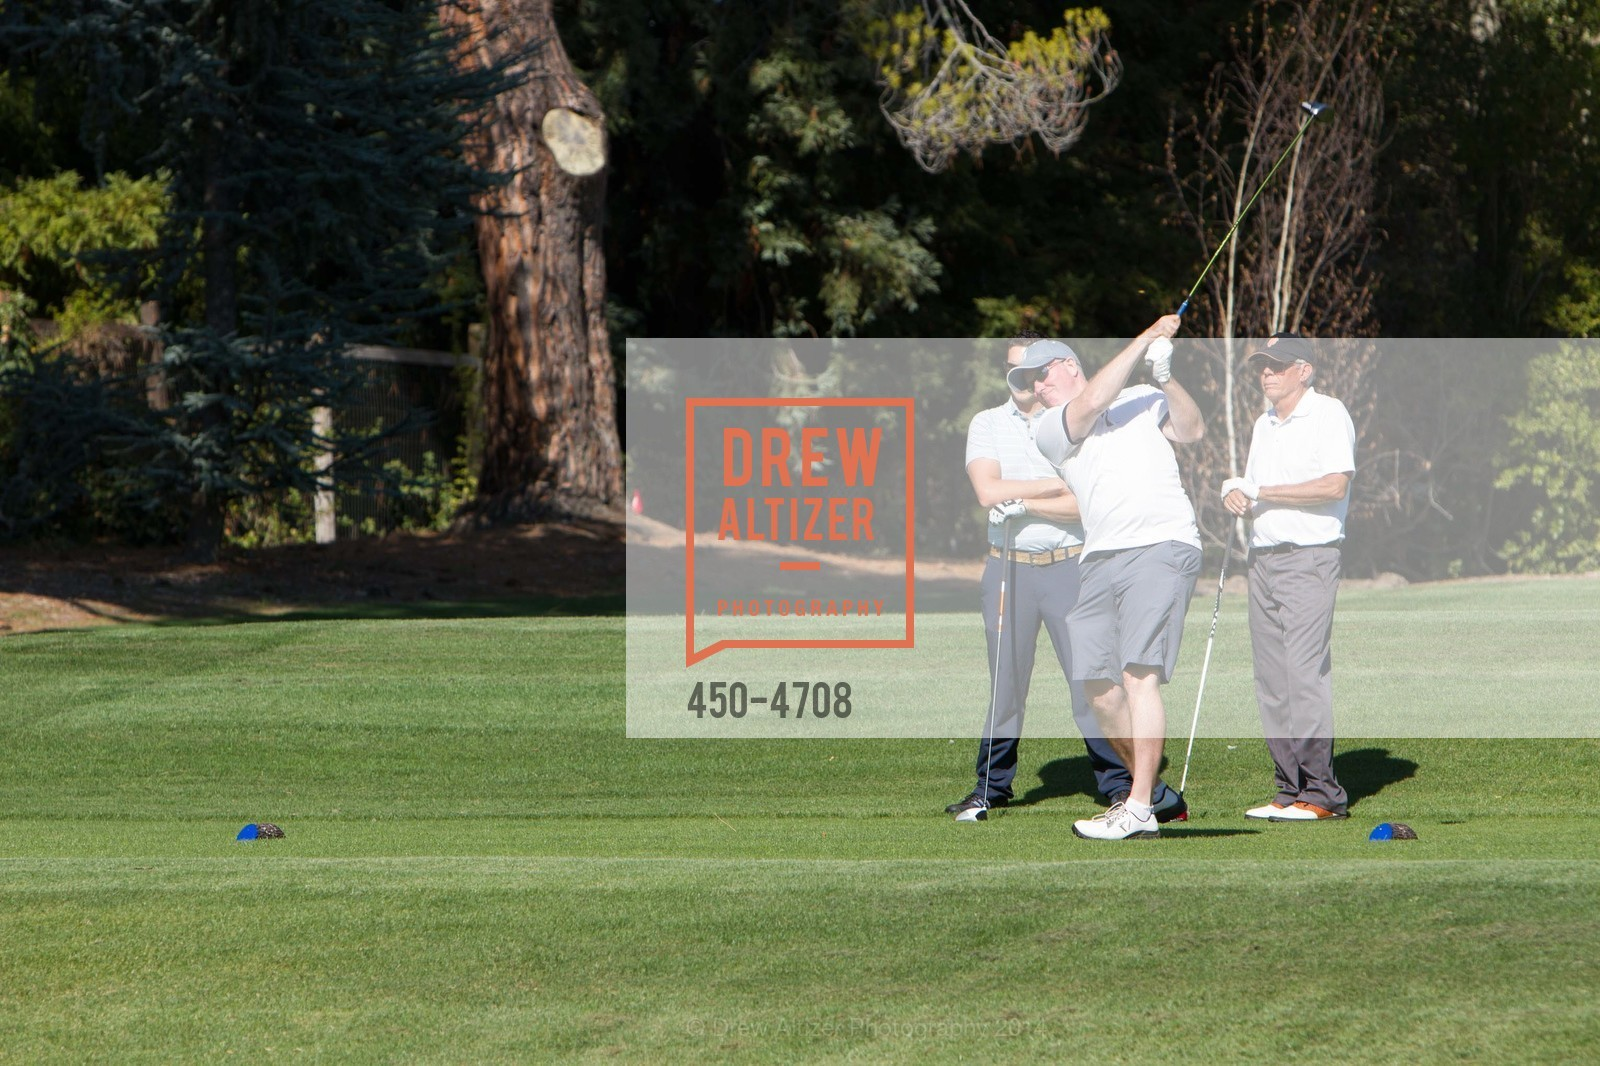 Dan Smith, David Perrez, Chris Dunn, Photo #450-4708